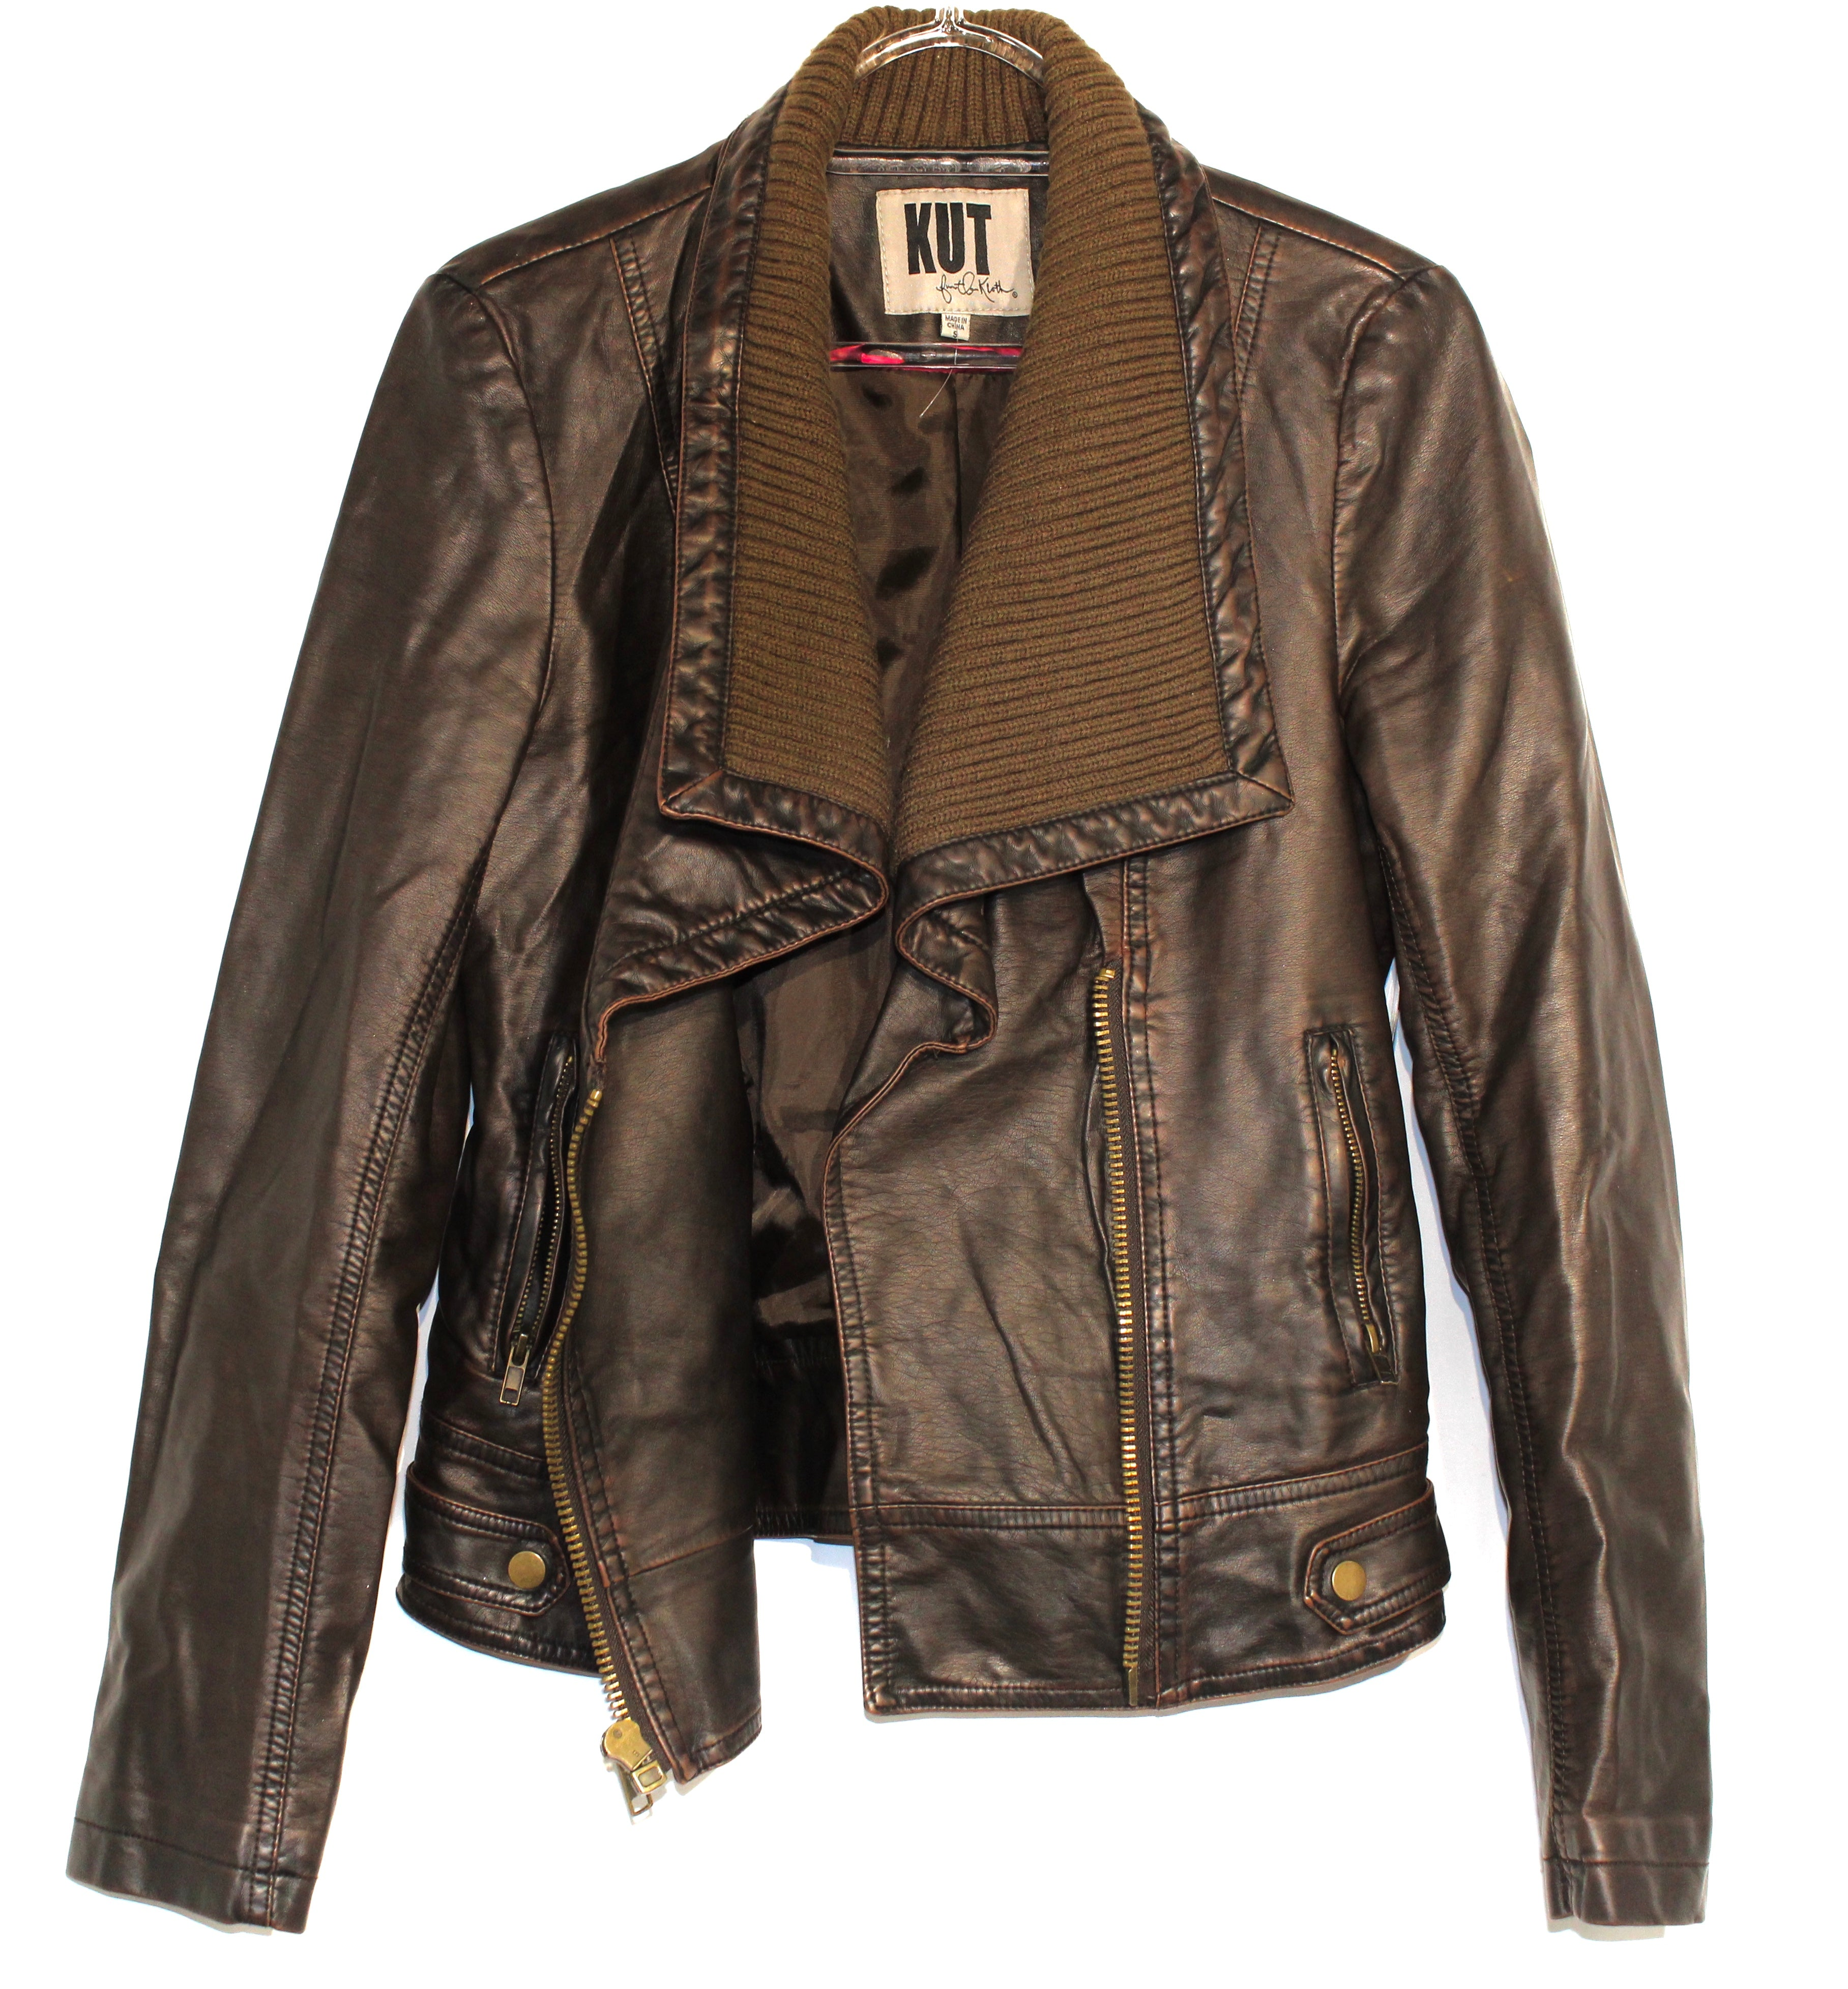 Primary Photo - BRAND: KUT <BR>STYLE: JACKET OUTDOOR <BR>COLOR: BROWN <BR>SIZE: S <BR>SKU: 262-26275-63049<BR>LEATHER LOOK